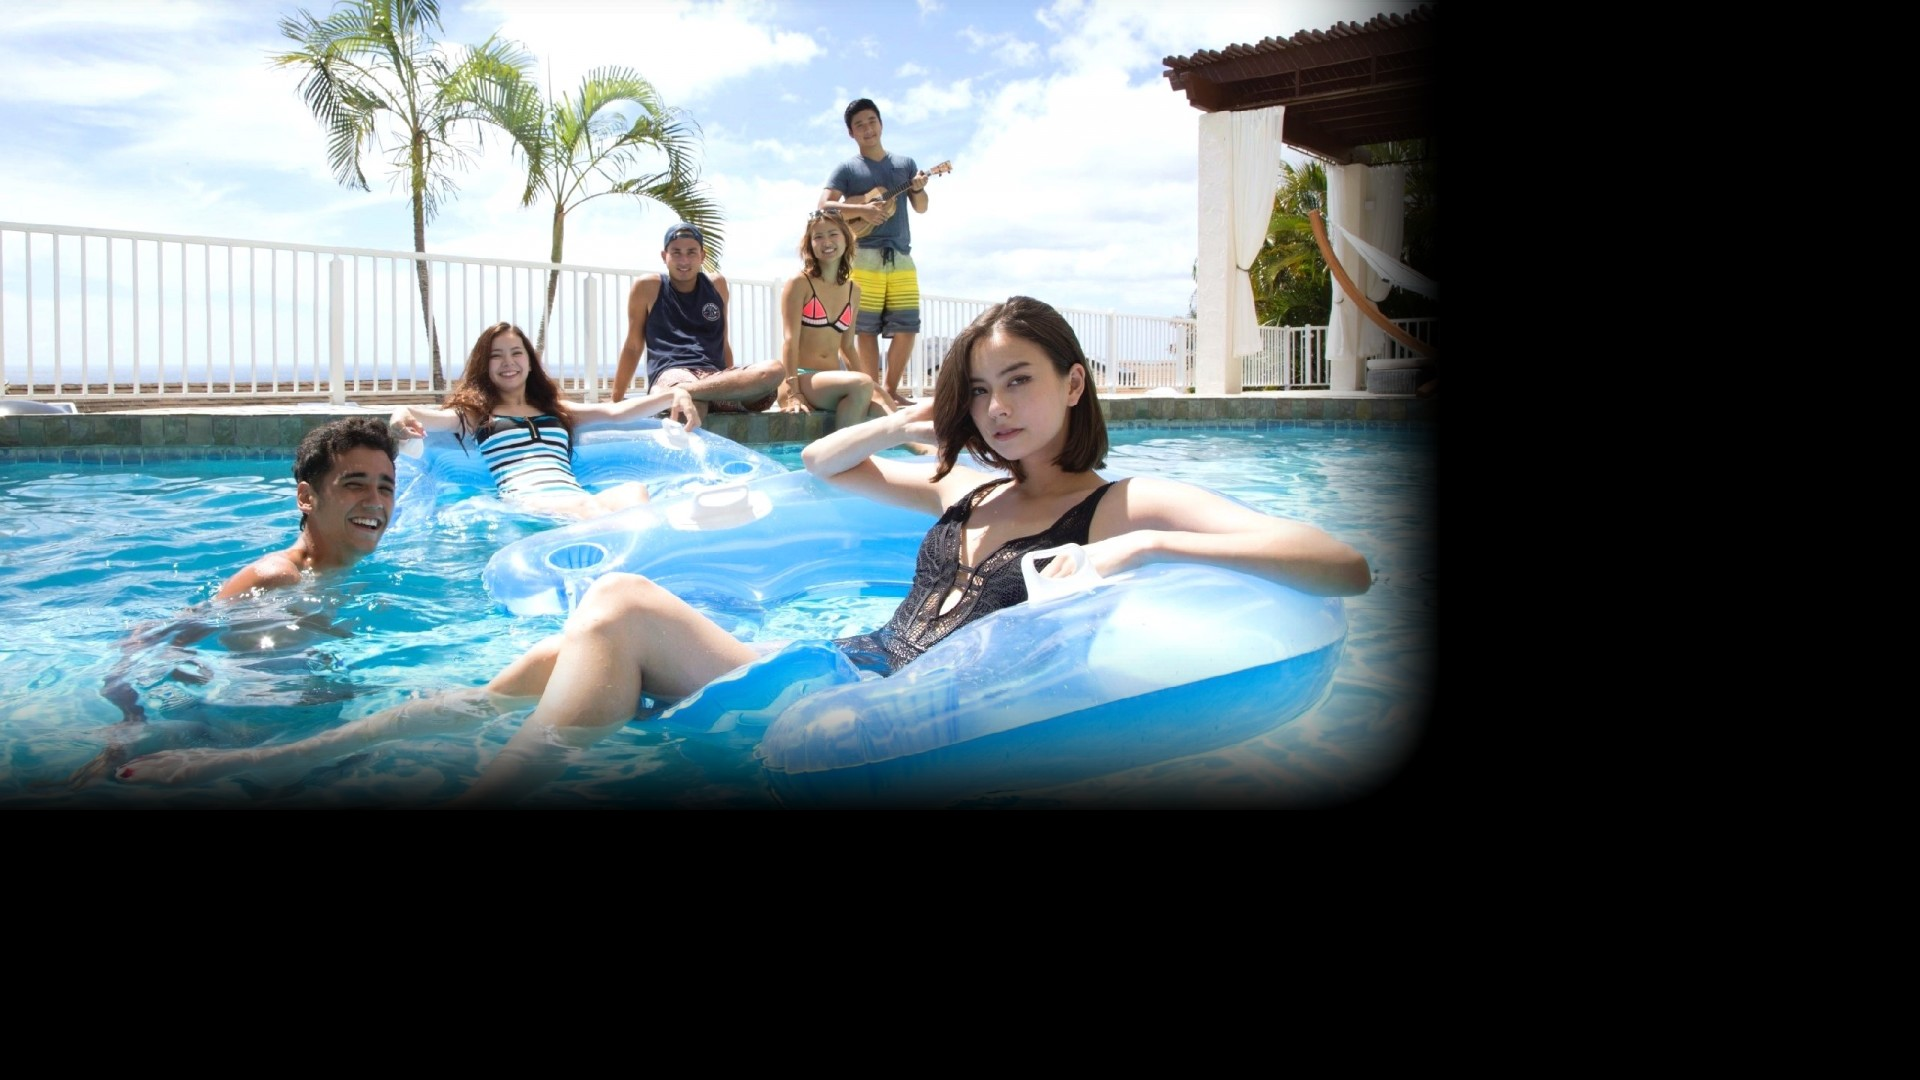 Terrace house aloha state series info for Terrace house series